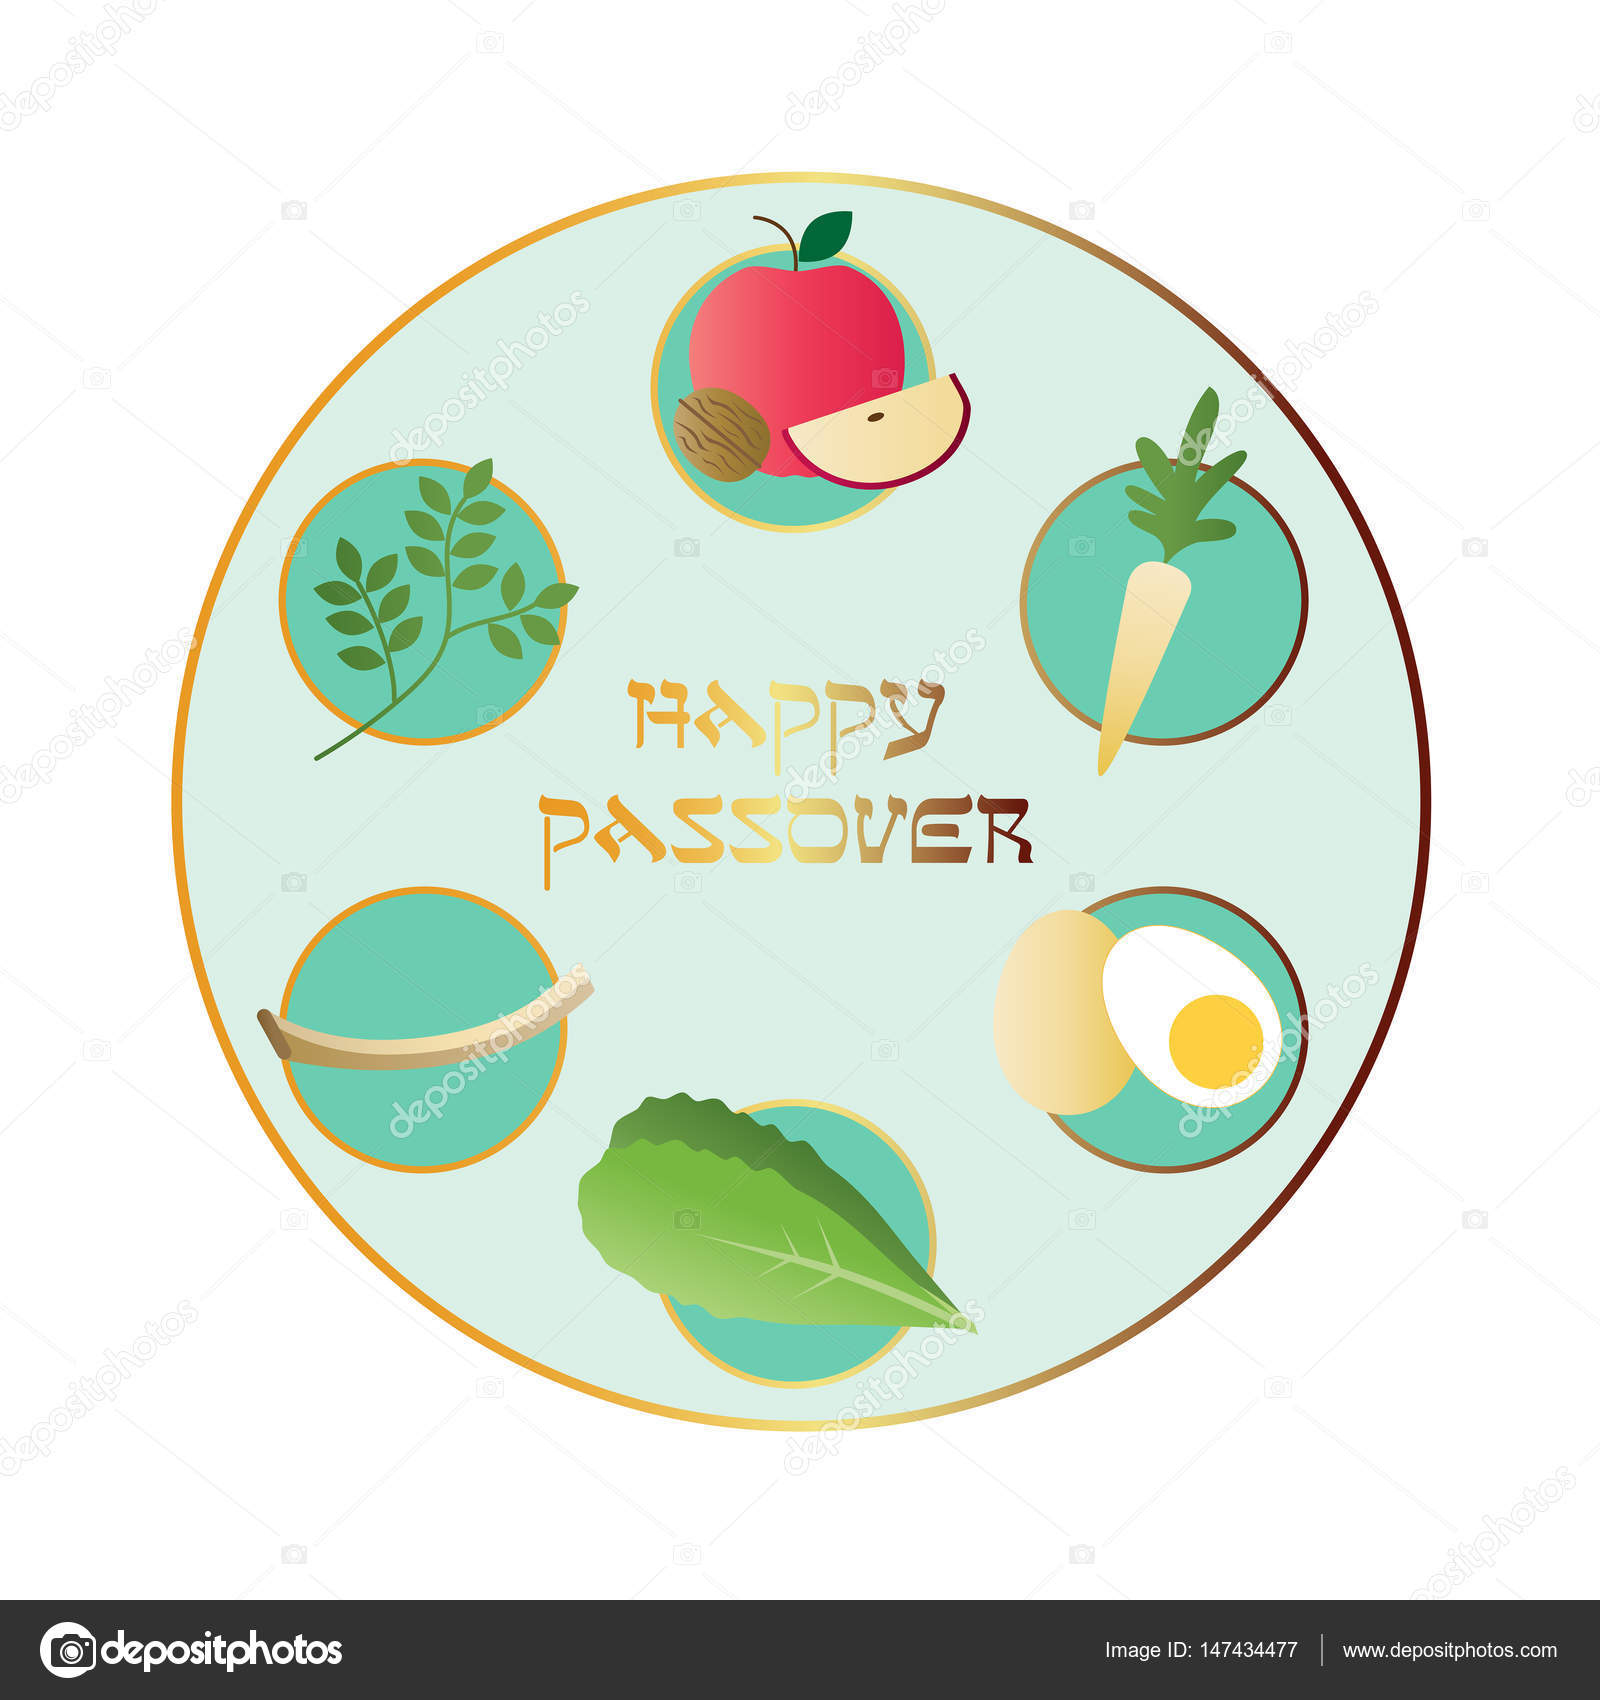 Happy passover seder plate stock vector scrapster 147434477 happy passover seder plate stock vector buycottarizona